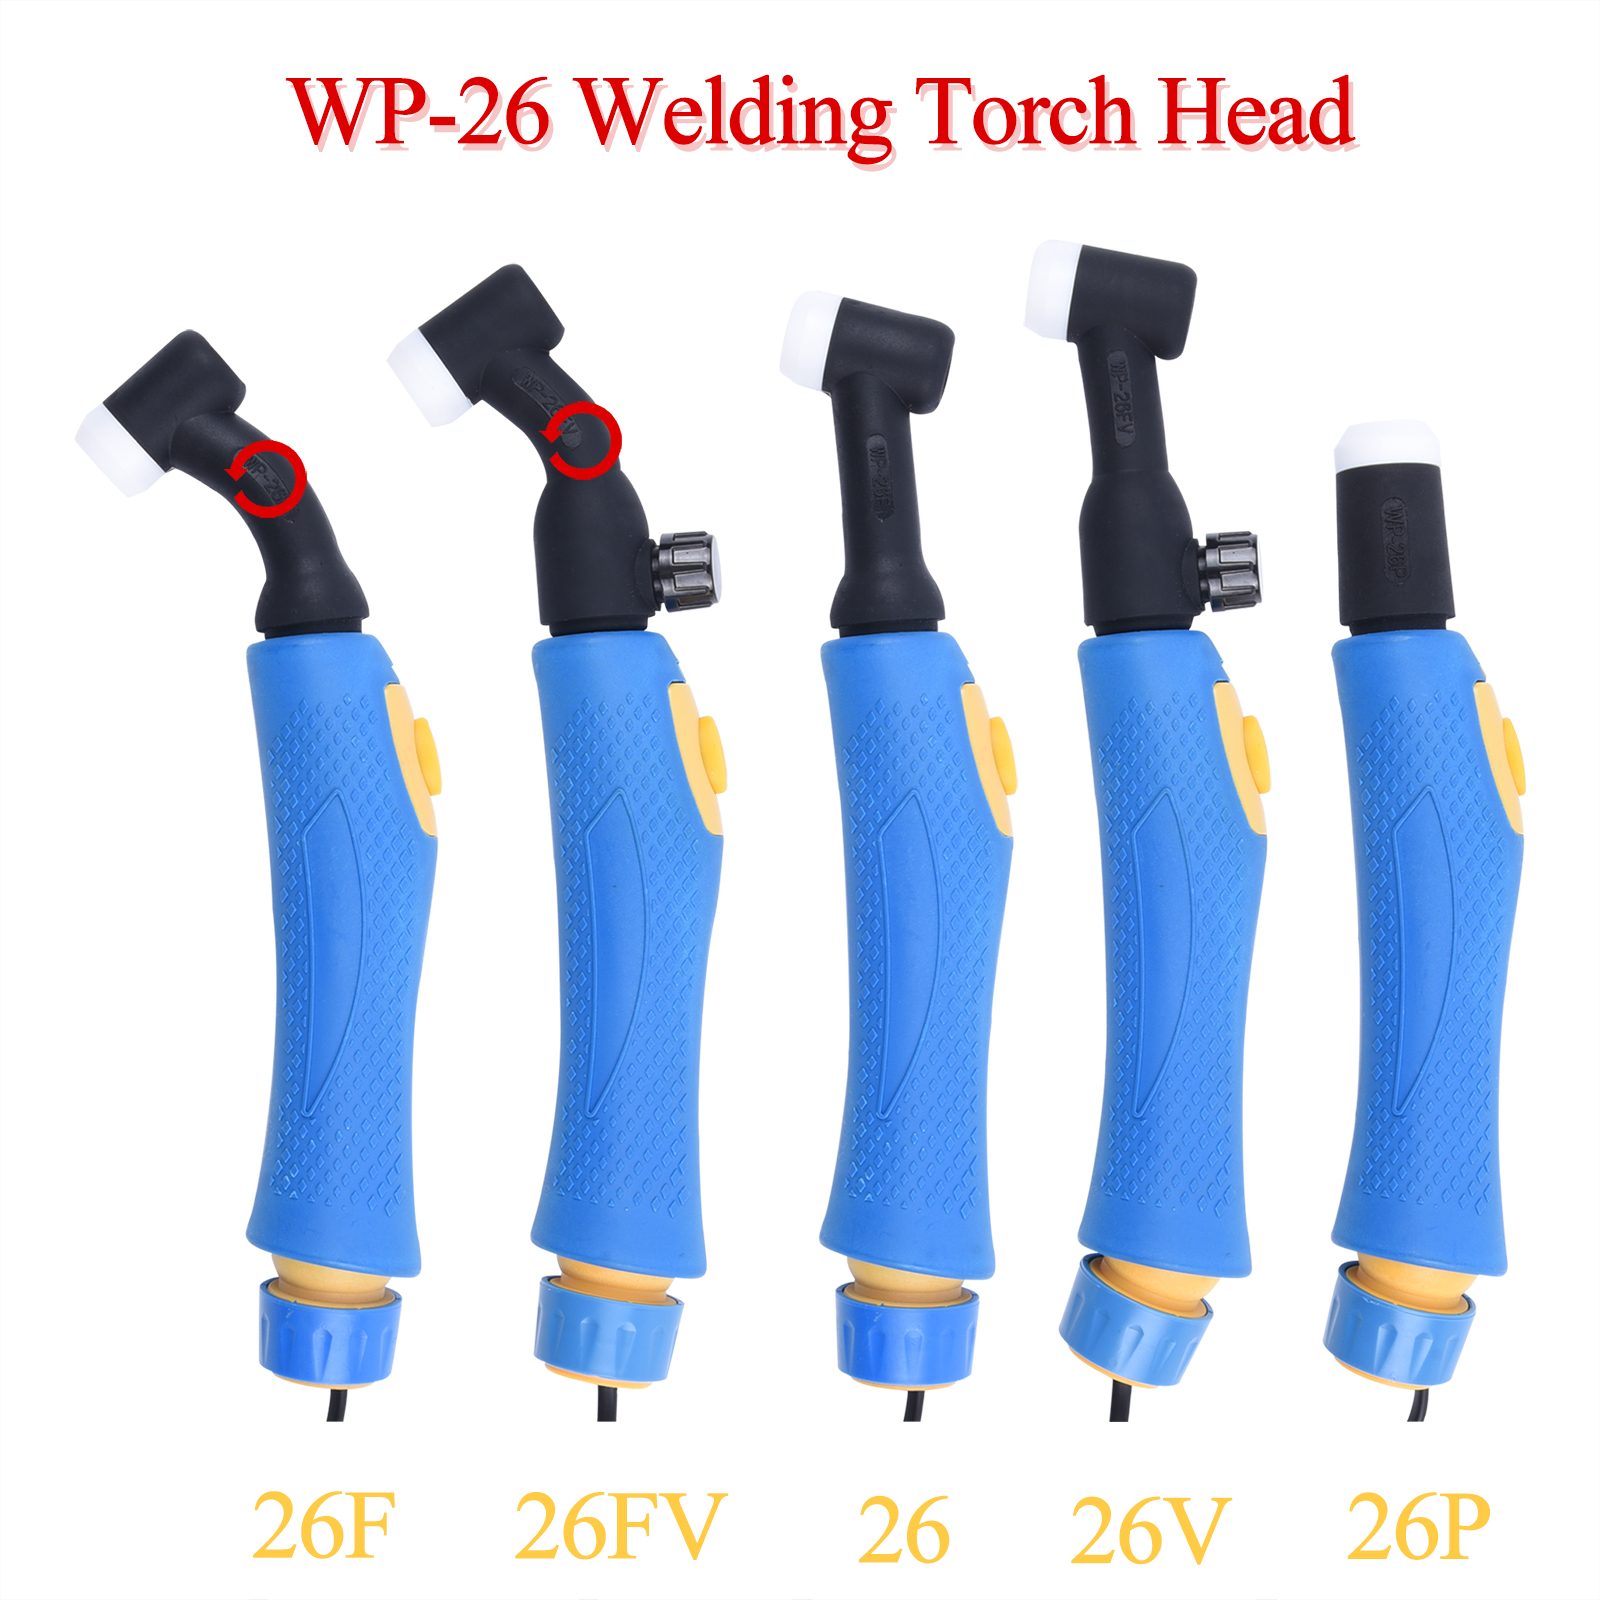 WP26 WP26F WP26V WP26FV WP26P SR26 SR26F SR26V SR26FV TIG Torch Body Air Cooled Head Human Engineering Design Rotatable 250 AMP